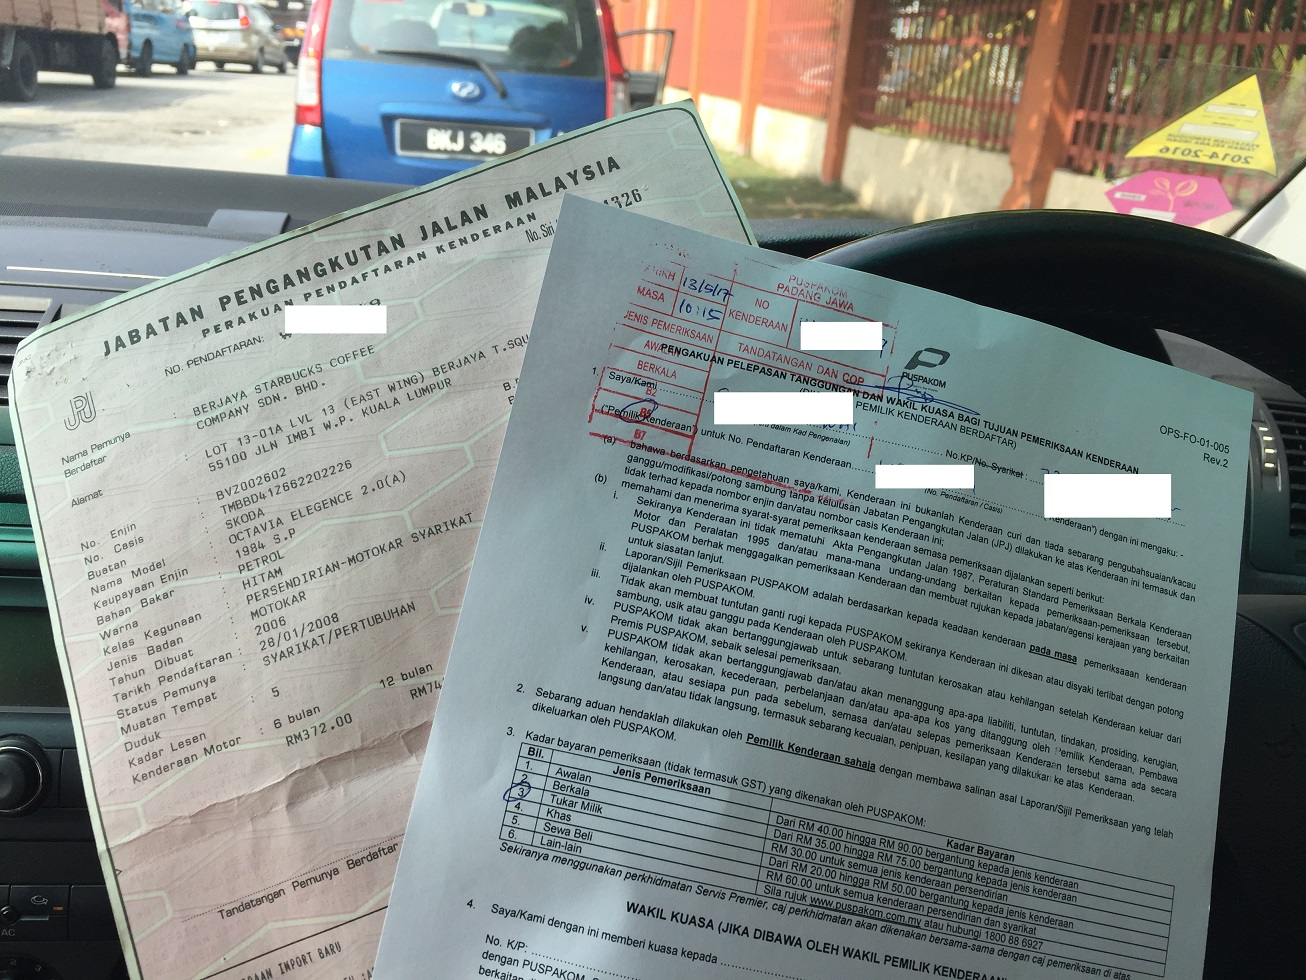 Registration of cars. Documentation Friends, what documents are needed when registering a supported car bought from the hands of the traffic police